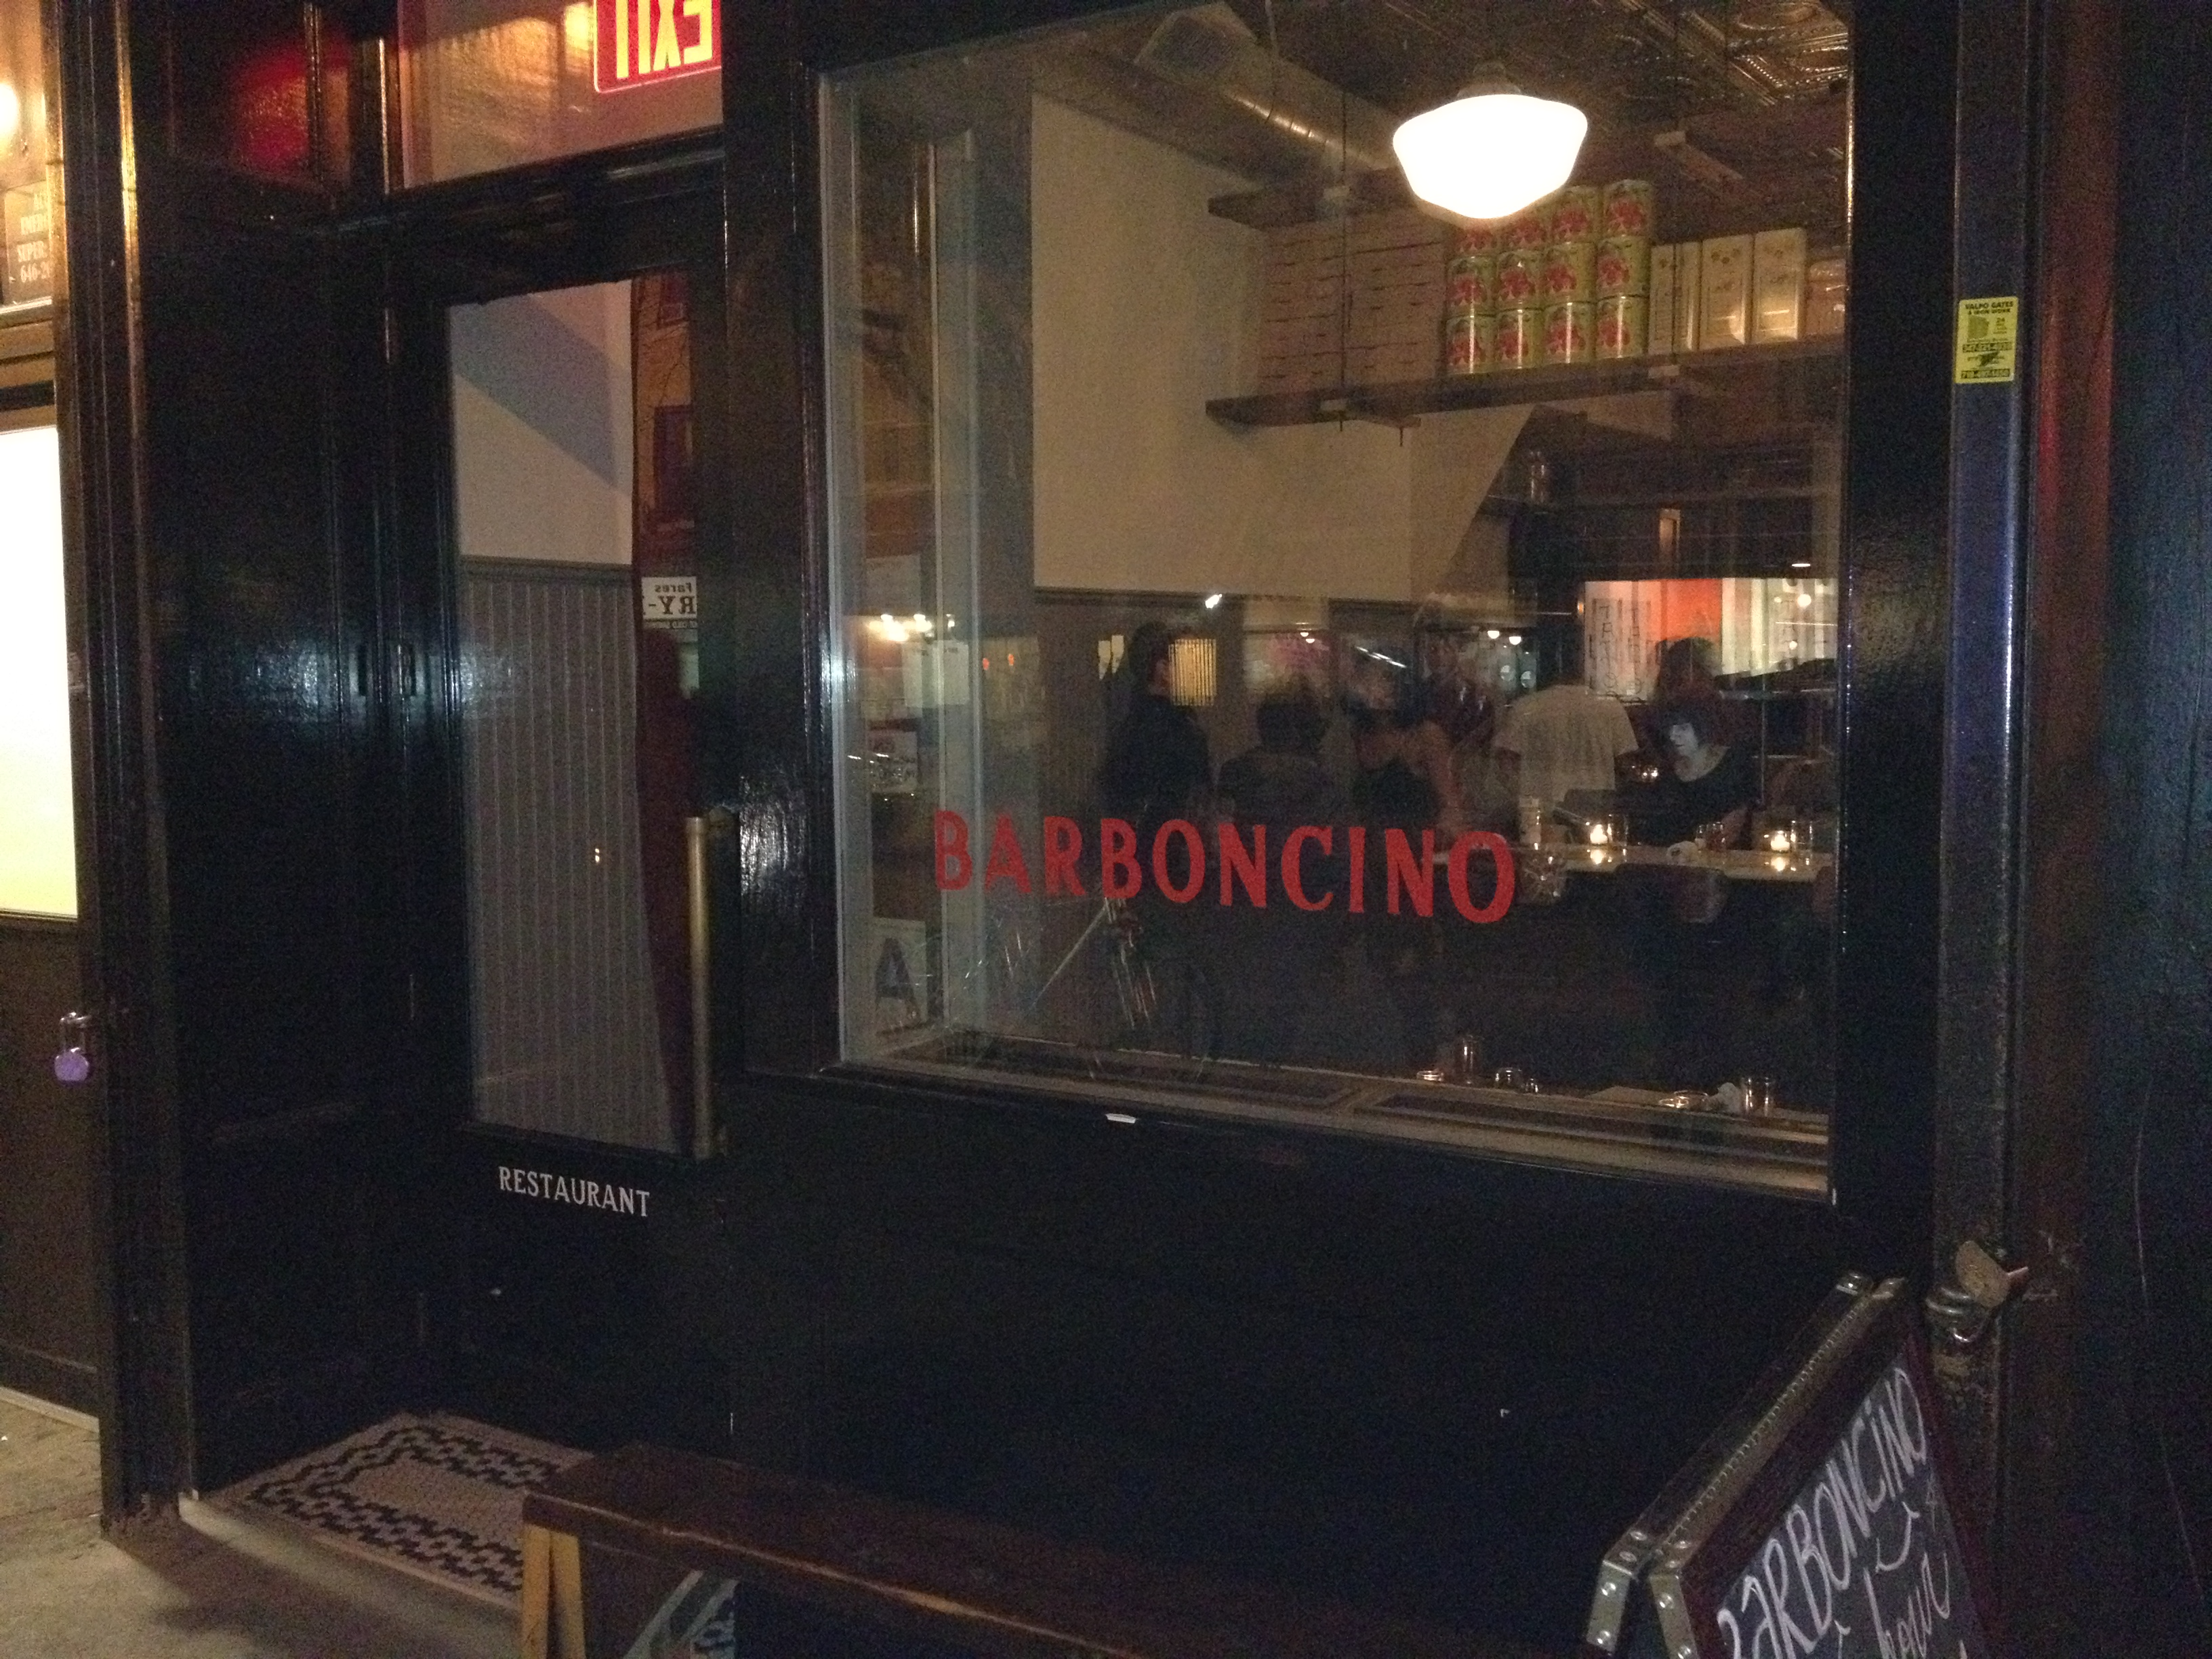 THE FUTURE LEGACY OF PAULIE GEE (Barboncino) | Eat This NY